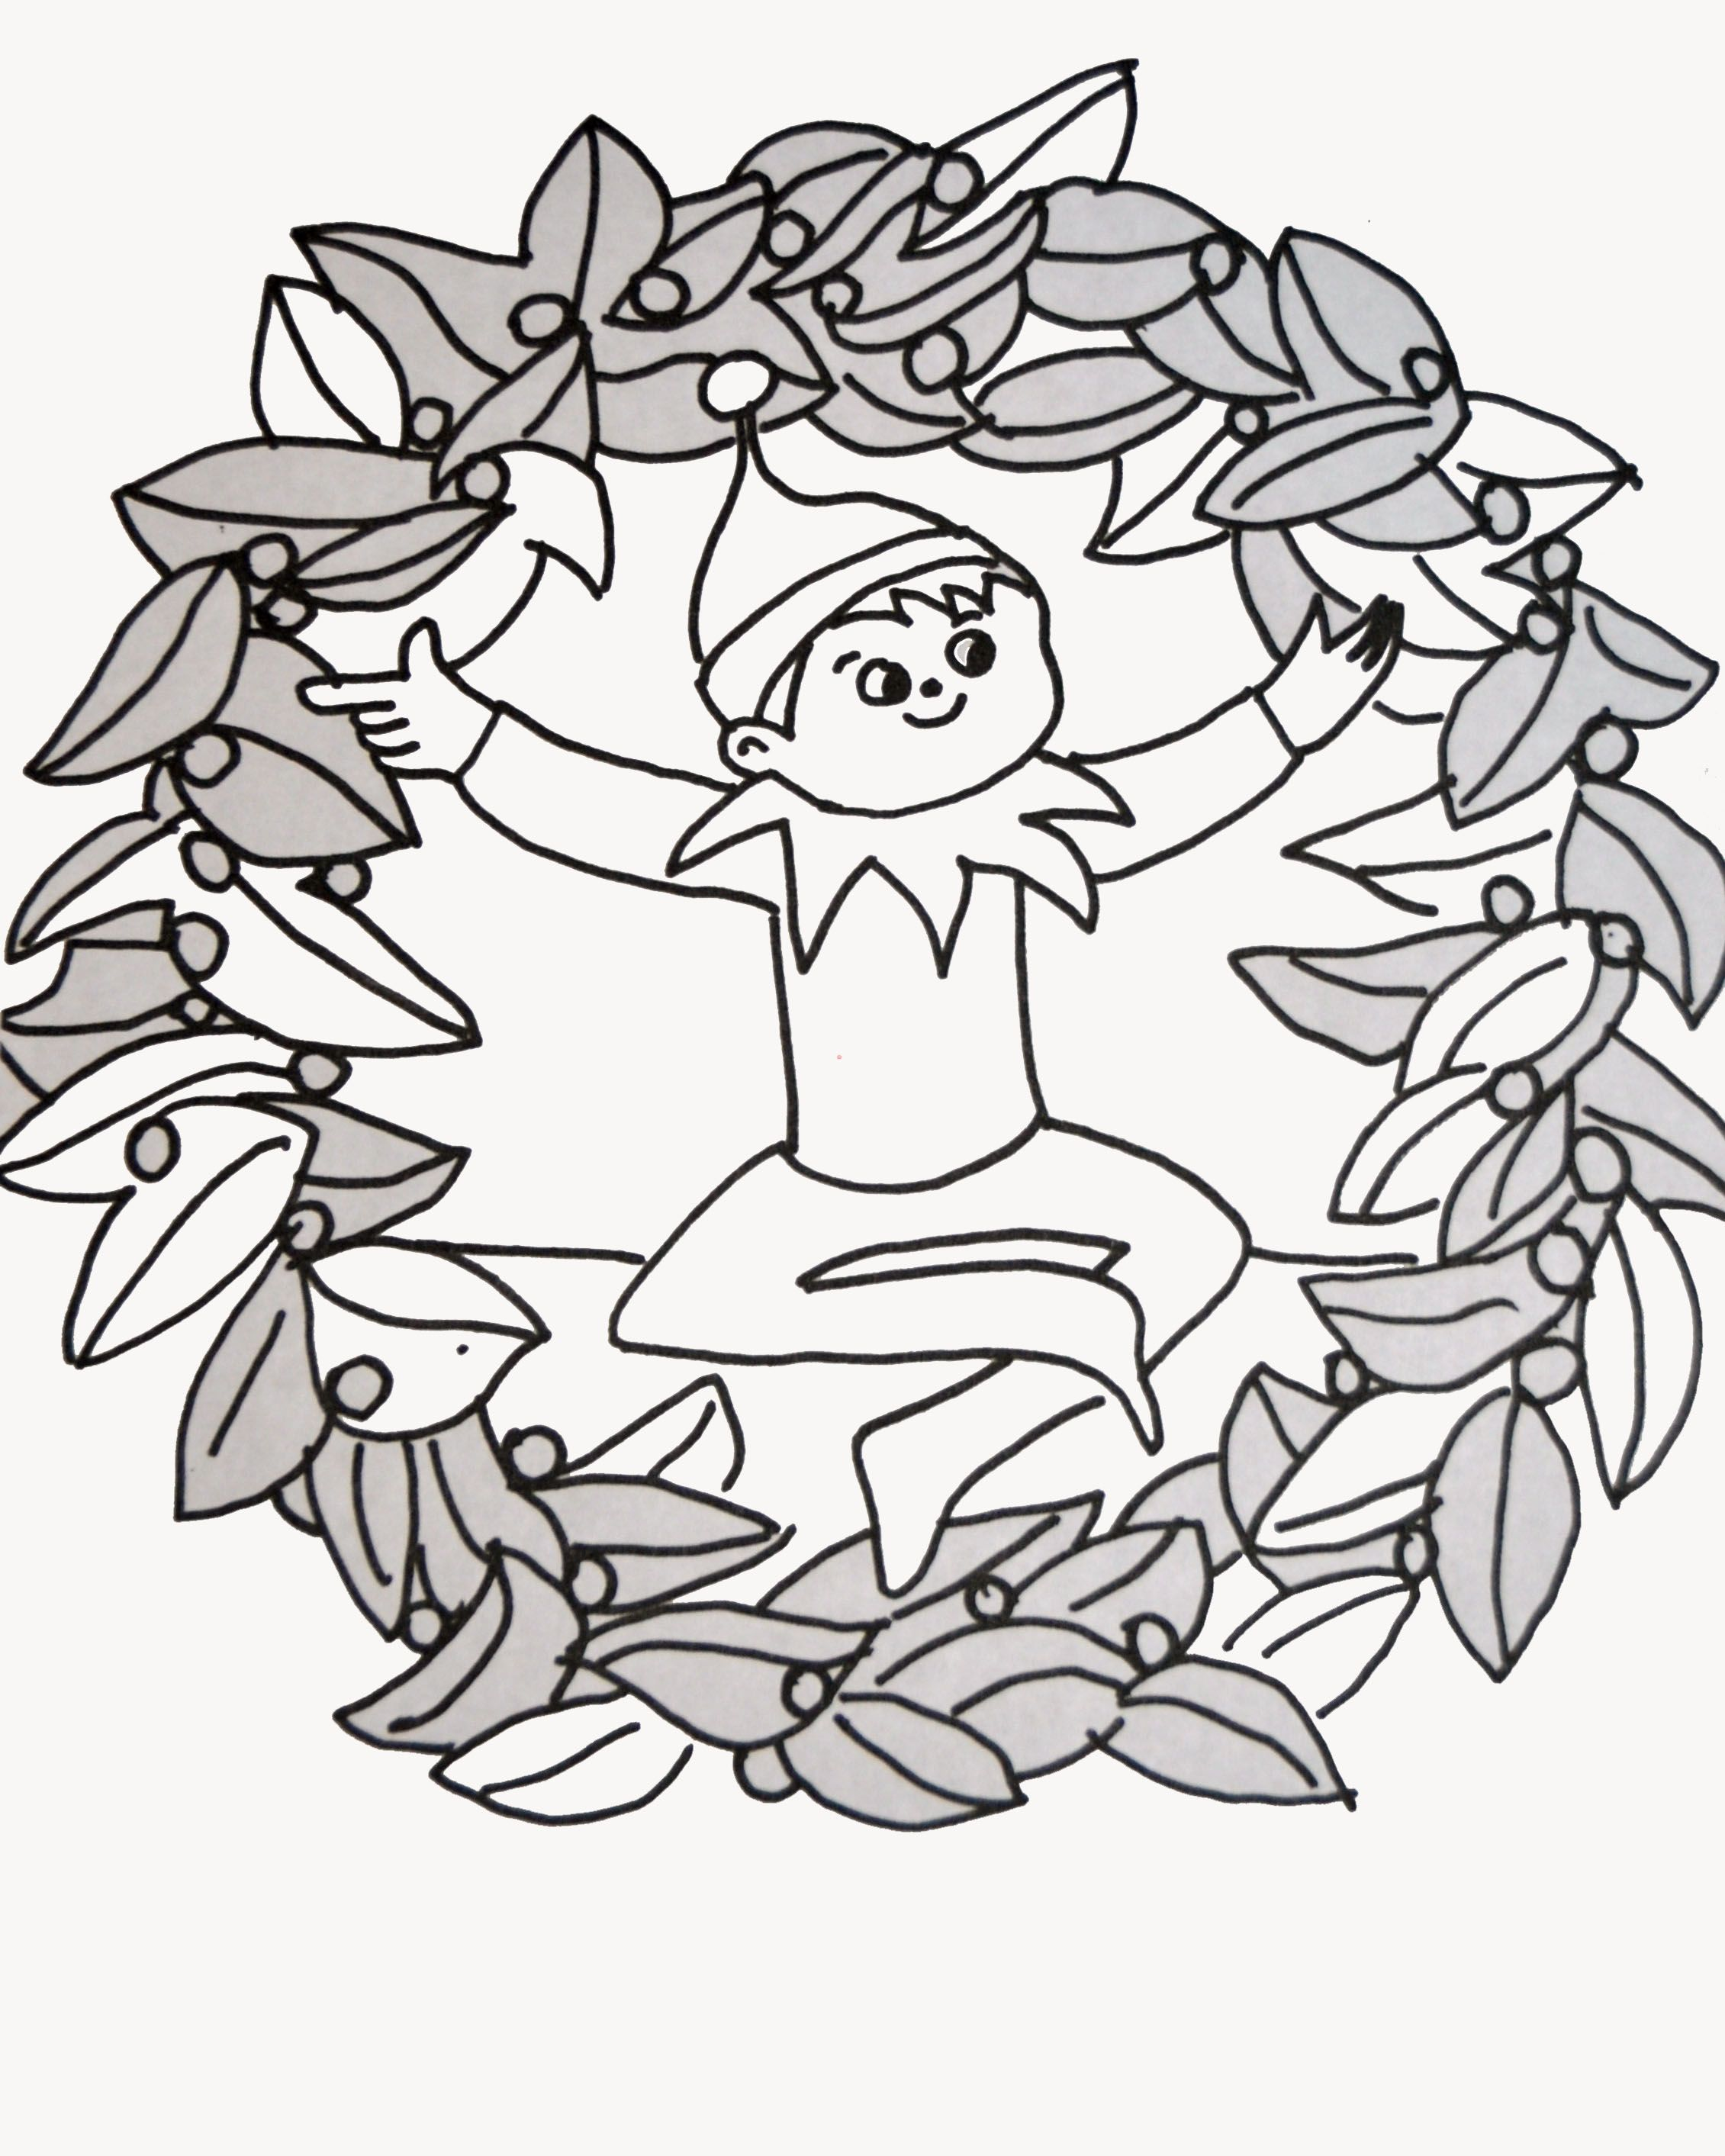 Elf on the shelf coloring page. | elf on the shelf | Pinterest